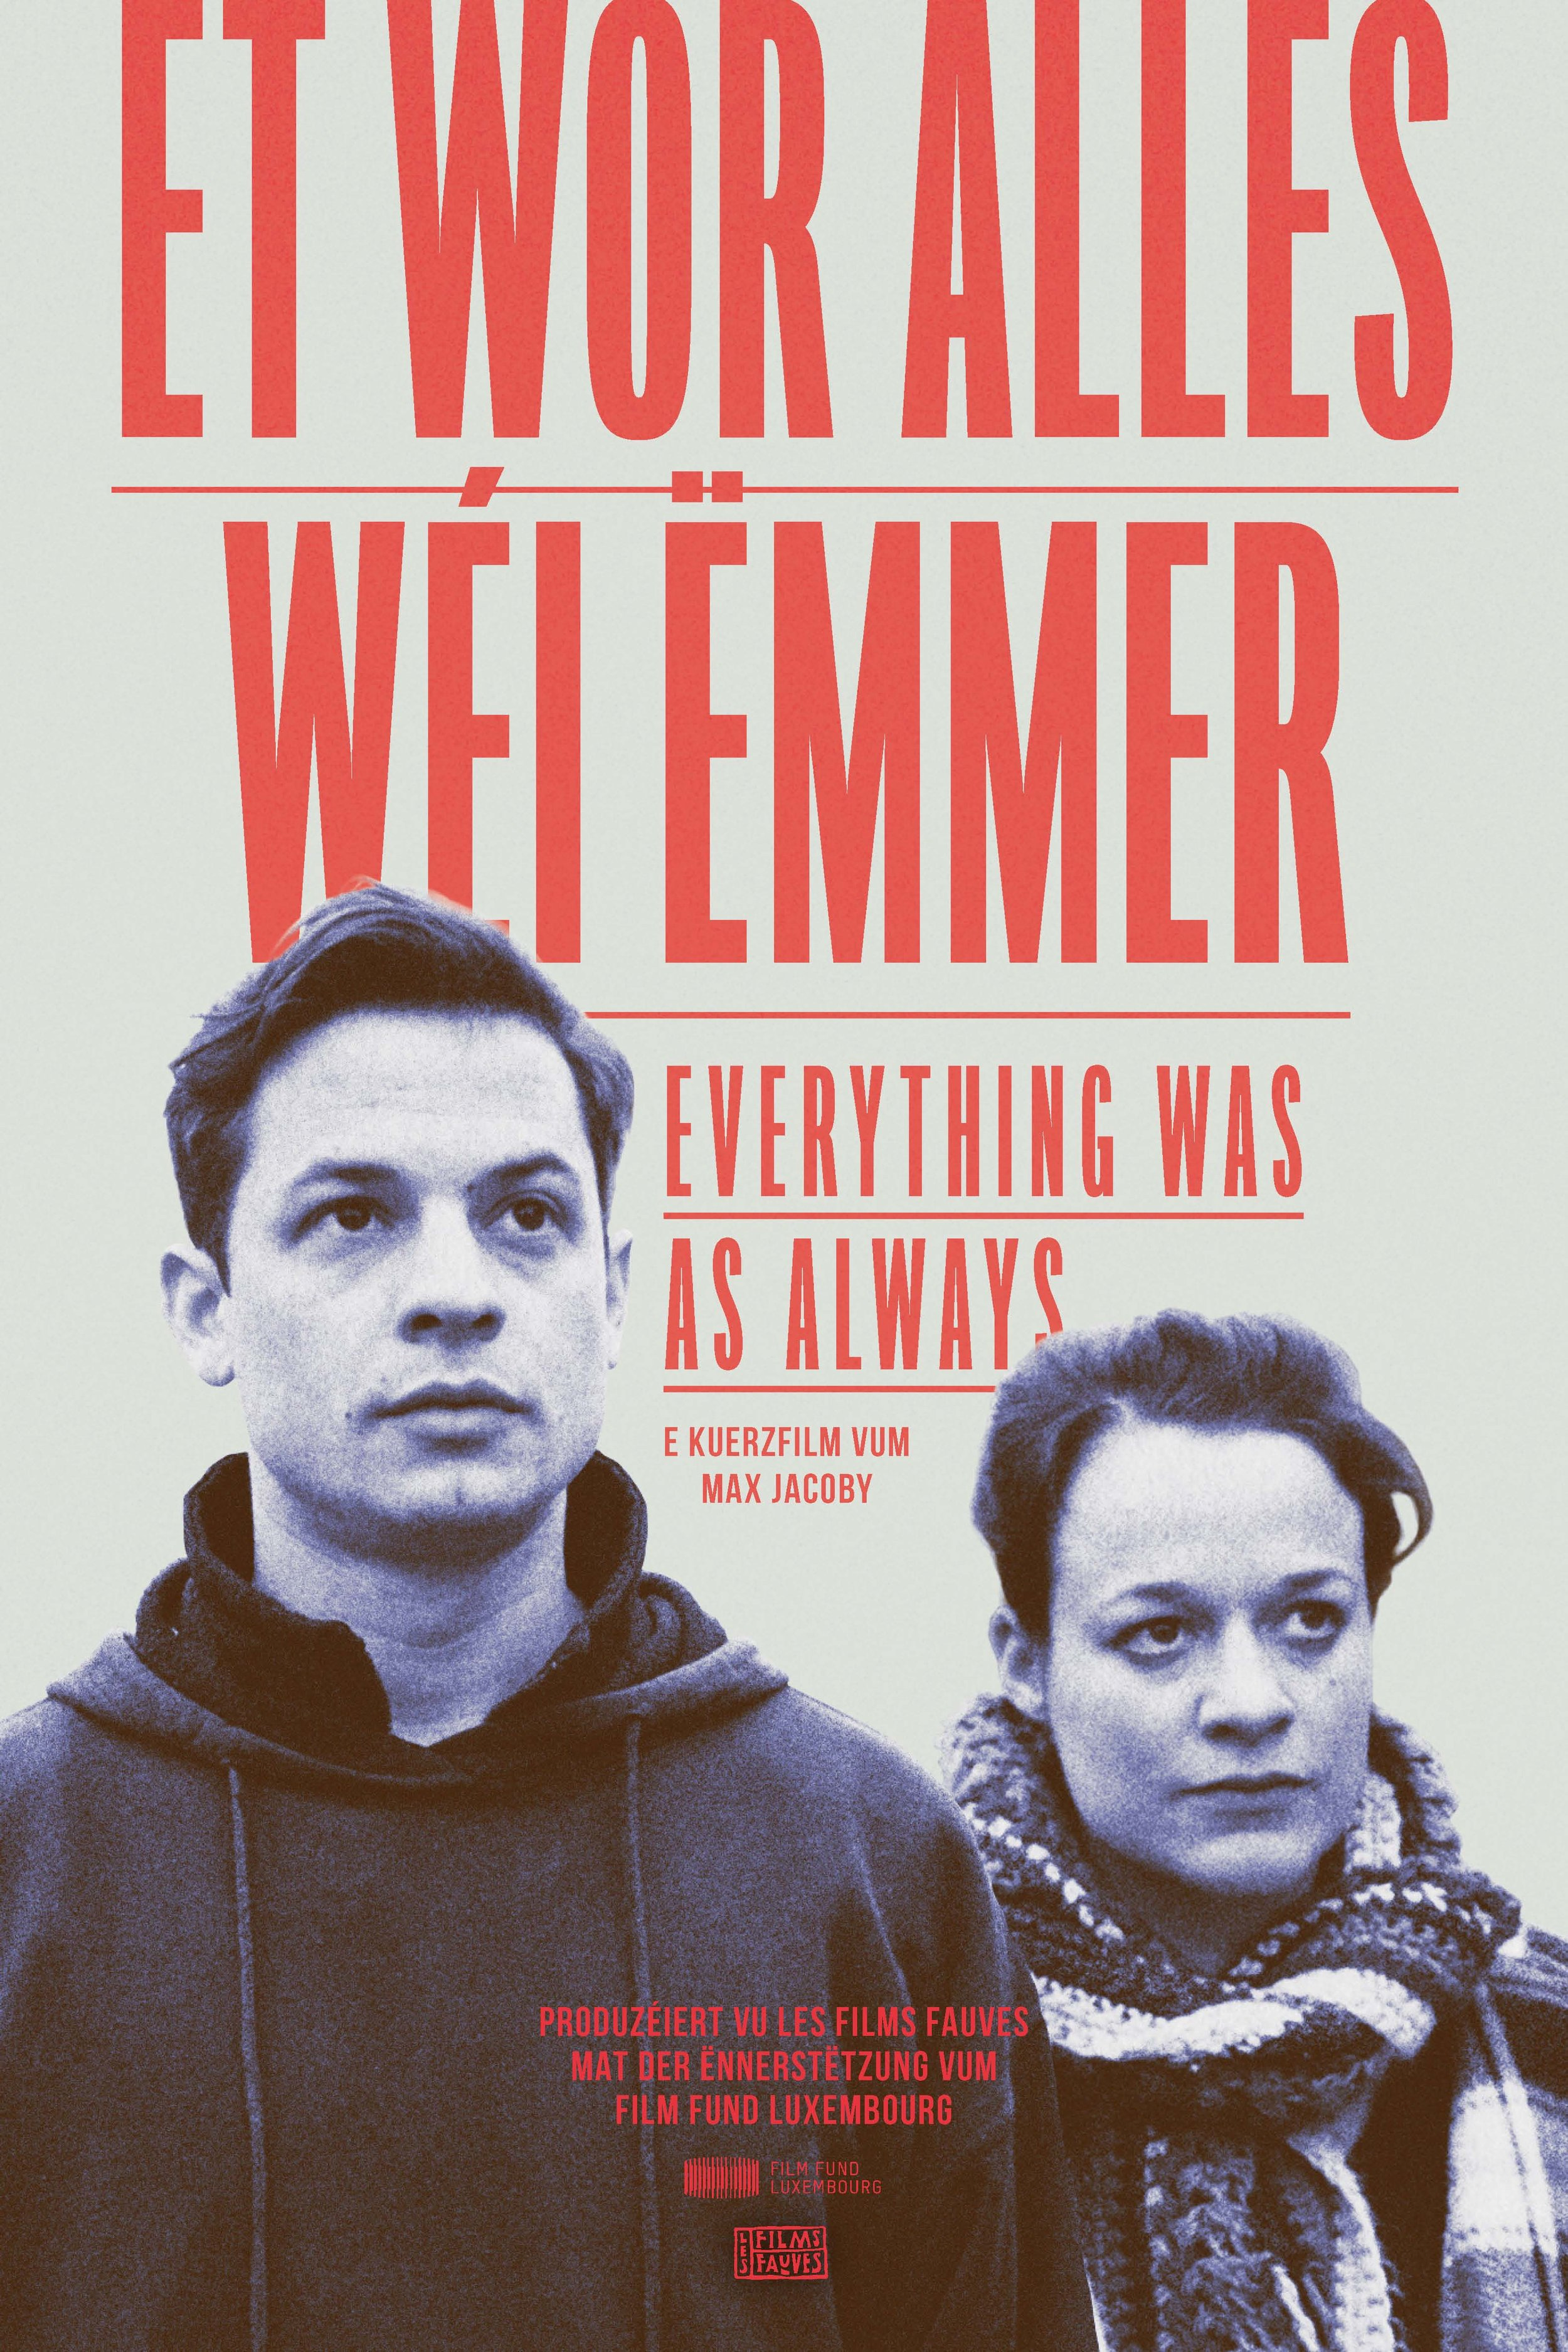 ET WOR ALLES WEI EMMER /EVERYTHING WAS AS ALWAYS - Directed by Max JACOBYScript by Max Jacoby &Govinda VAN MAELEWith Anouk WAGENER, Philippe DECKER &Roland GELHAUSENYear:2016Original Version:LuxembourgishGenre: Family,DramaRunning Time:19minProduction companies:LES FILMS FAUVES (LU)